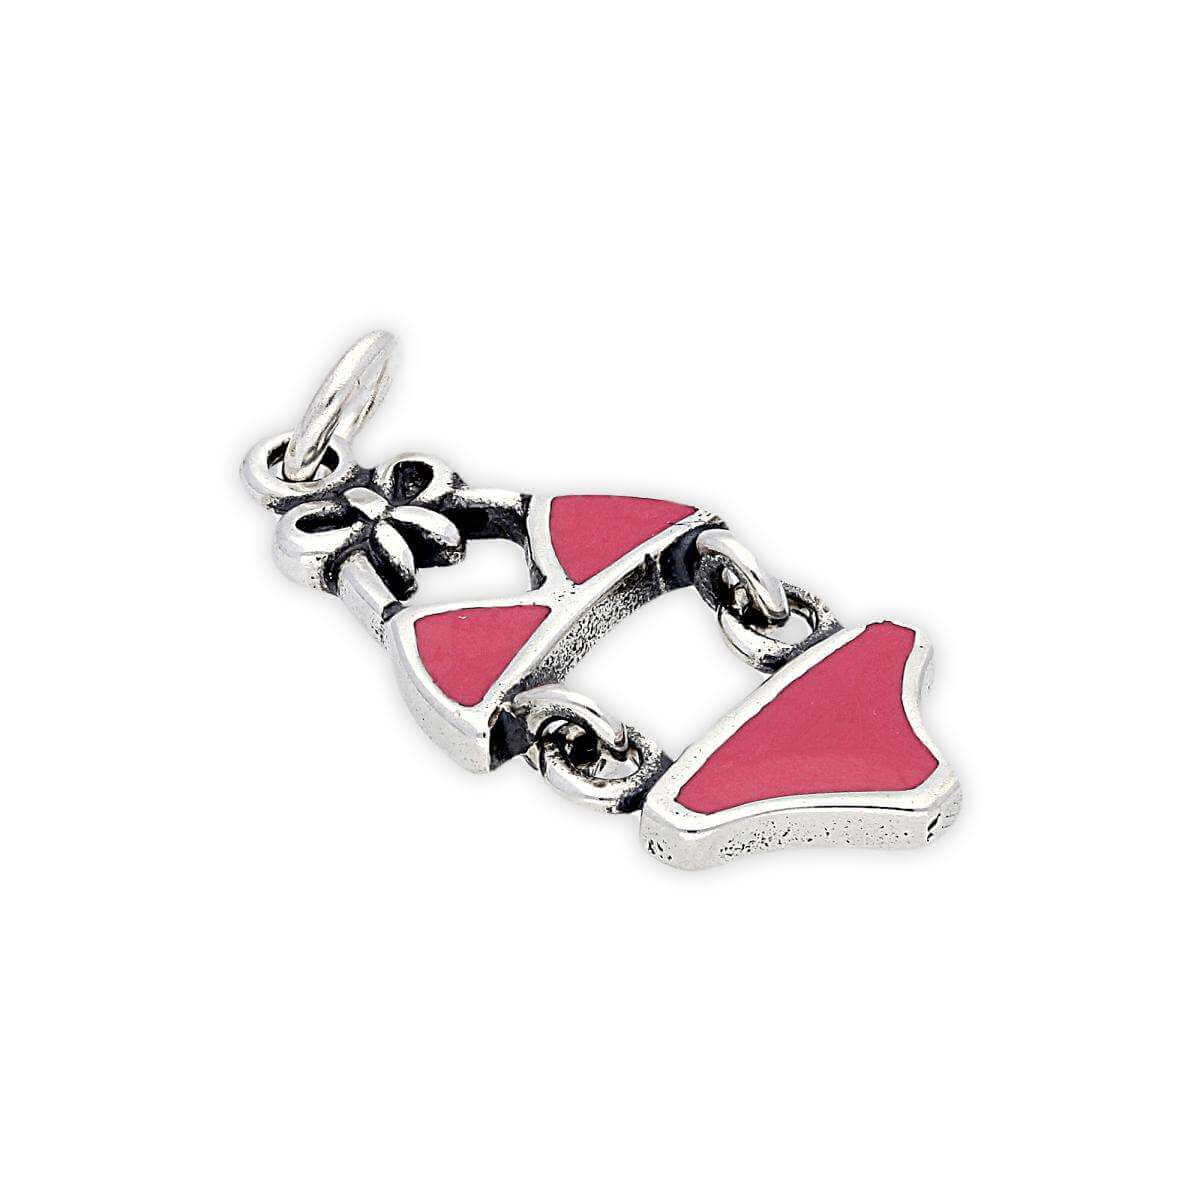 Sterling Silver and Enamel Bikini Charm